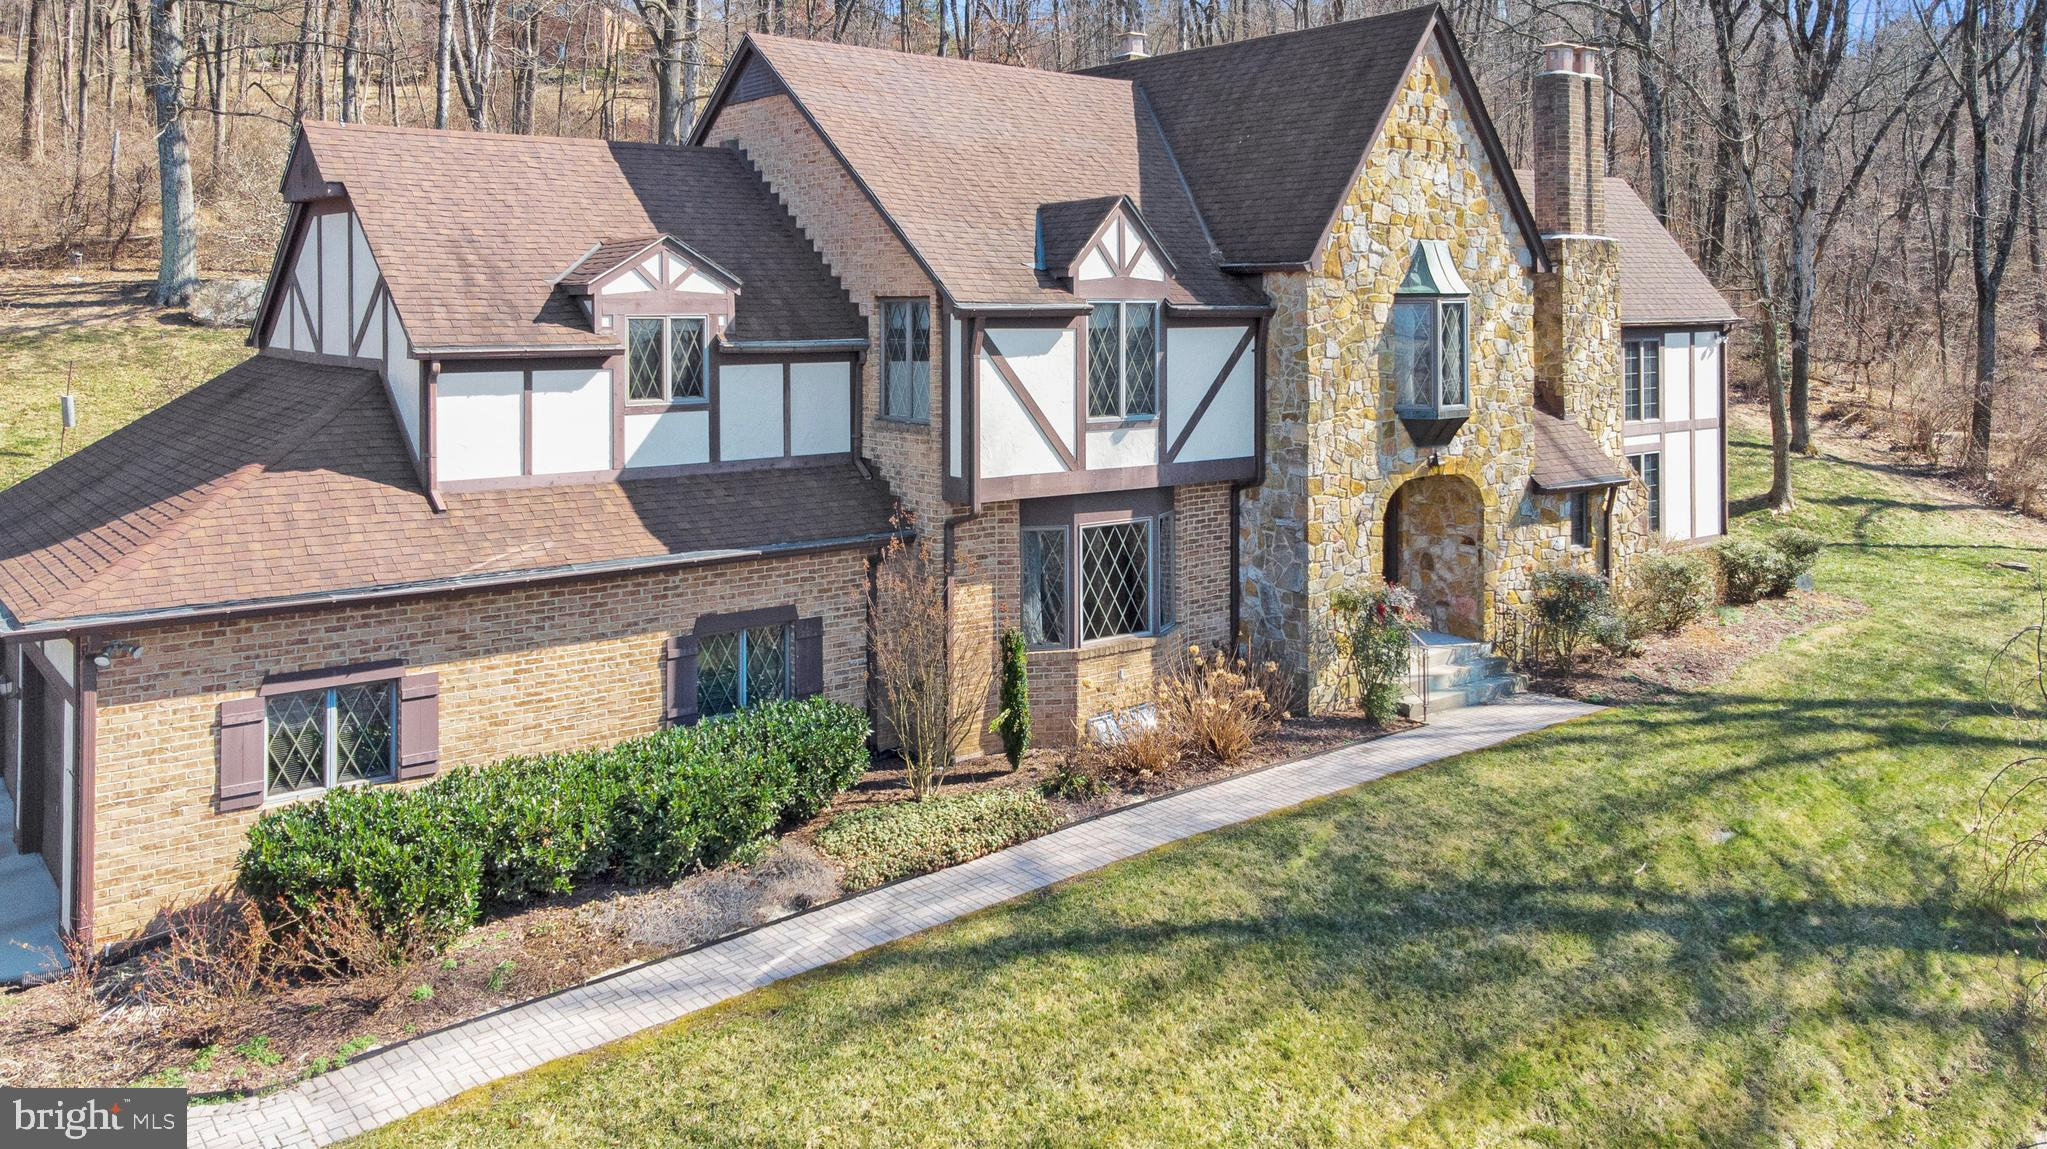 4616 OLD NATIONAL PIKE, MIDDLETOWN, MD 21769